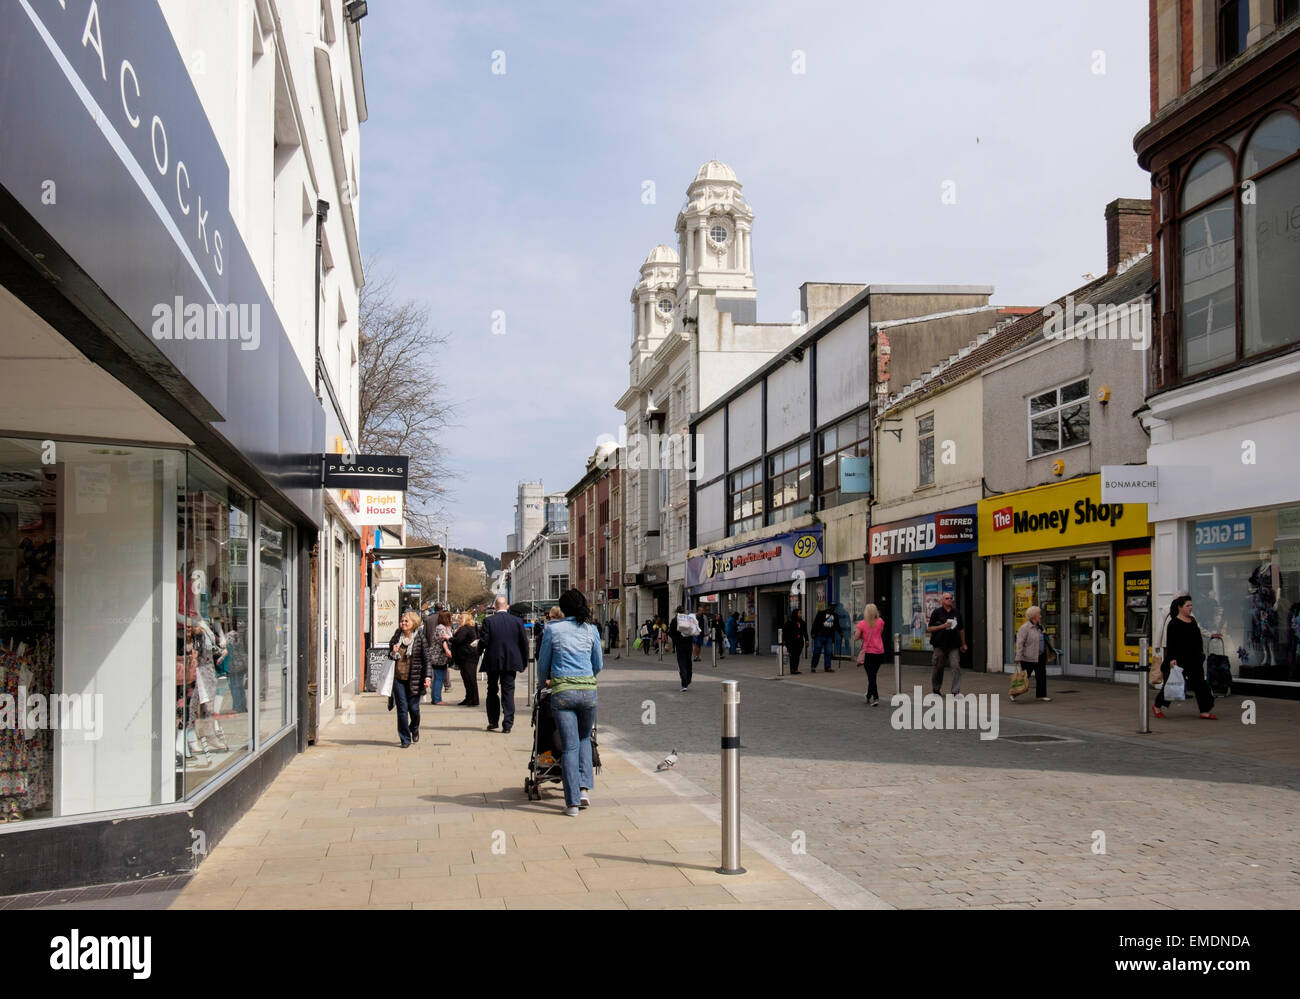 City centre shops and shoppers in pedestrianised Oxford Street, Swansea, West Glamorgan, South Wales, UK, Britain - Stock Image